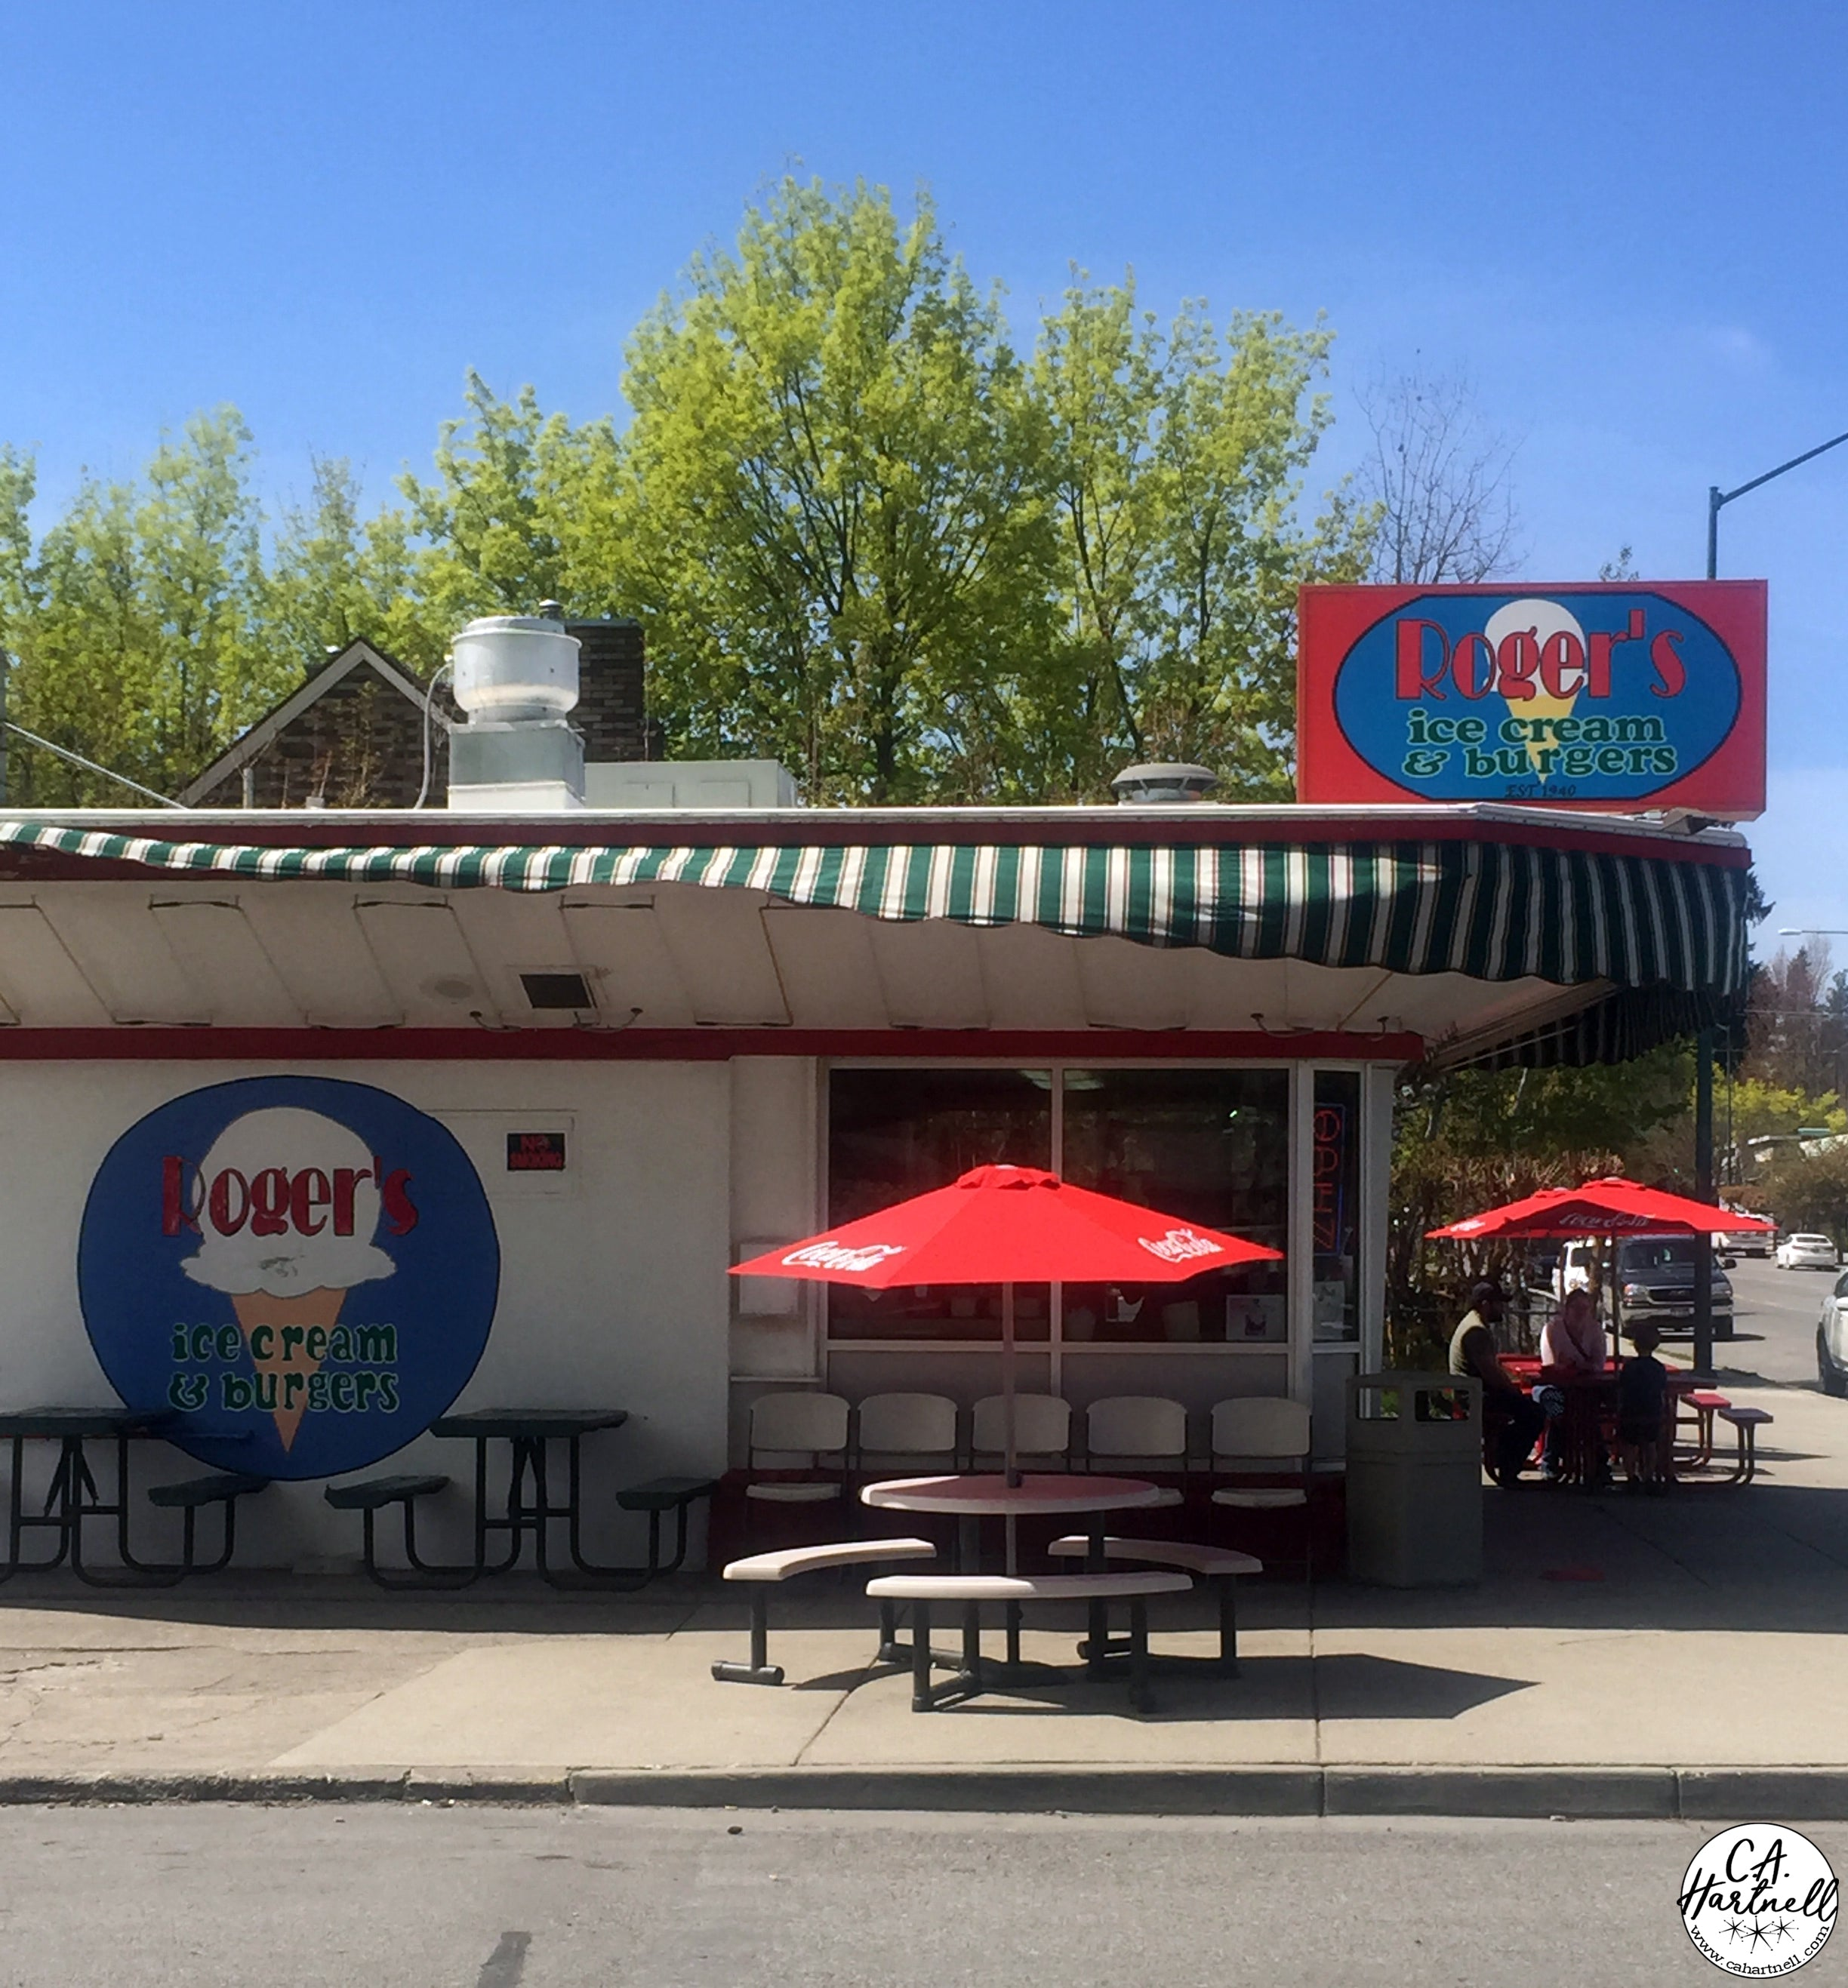 Roger's Ice Cream and Burgers | C.A. Hartnell